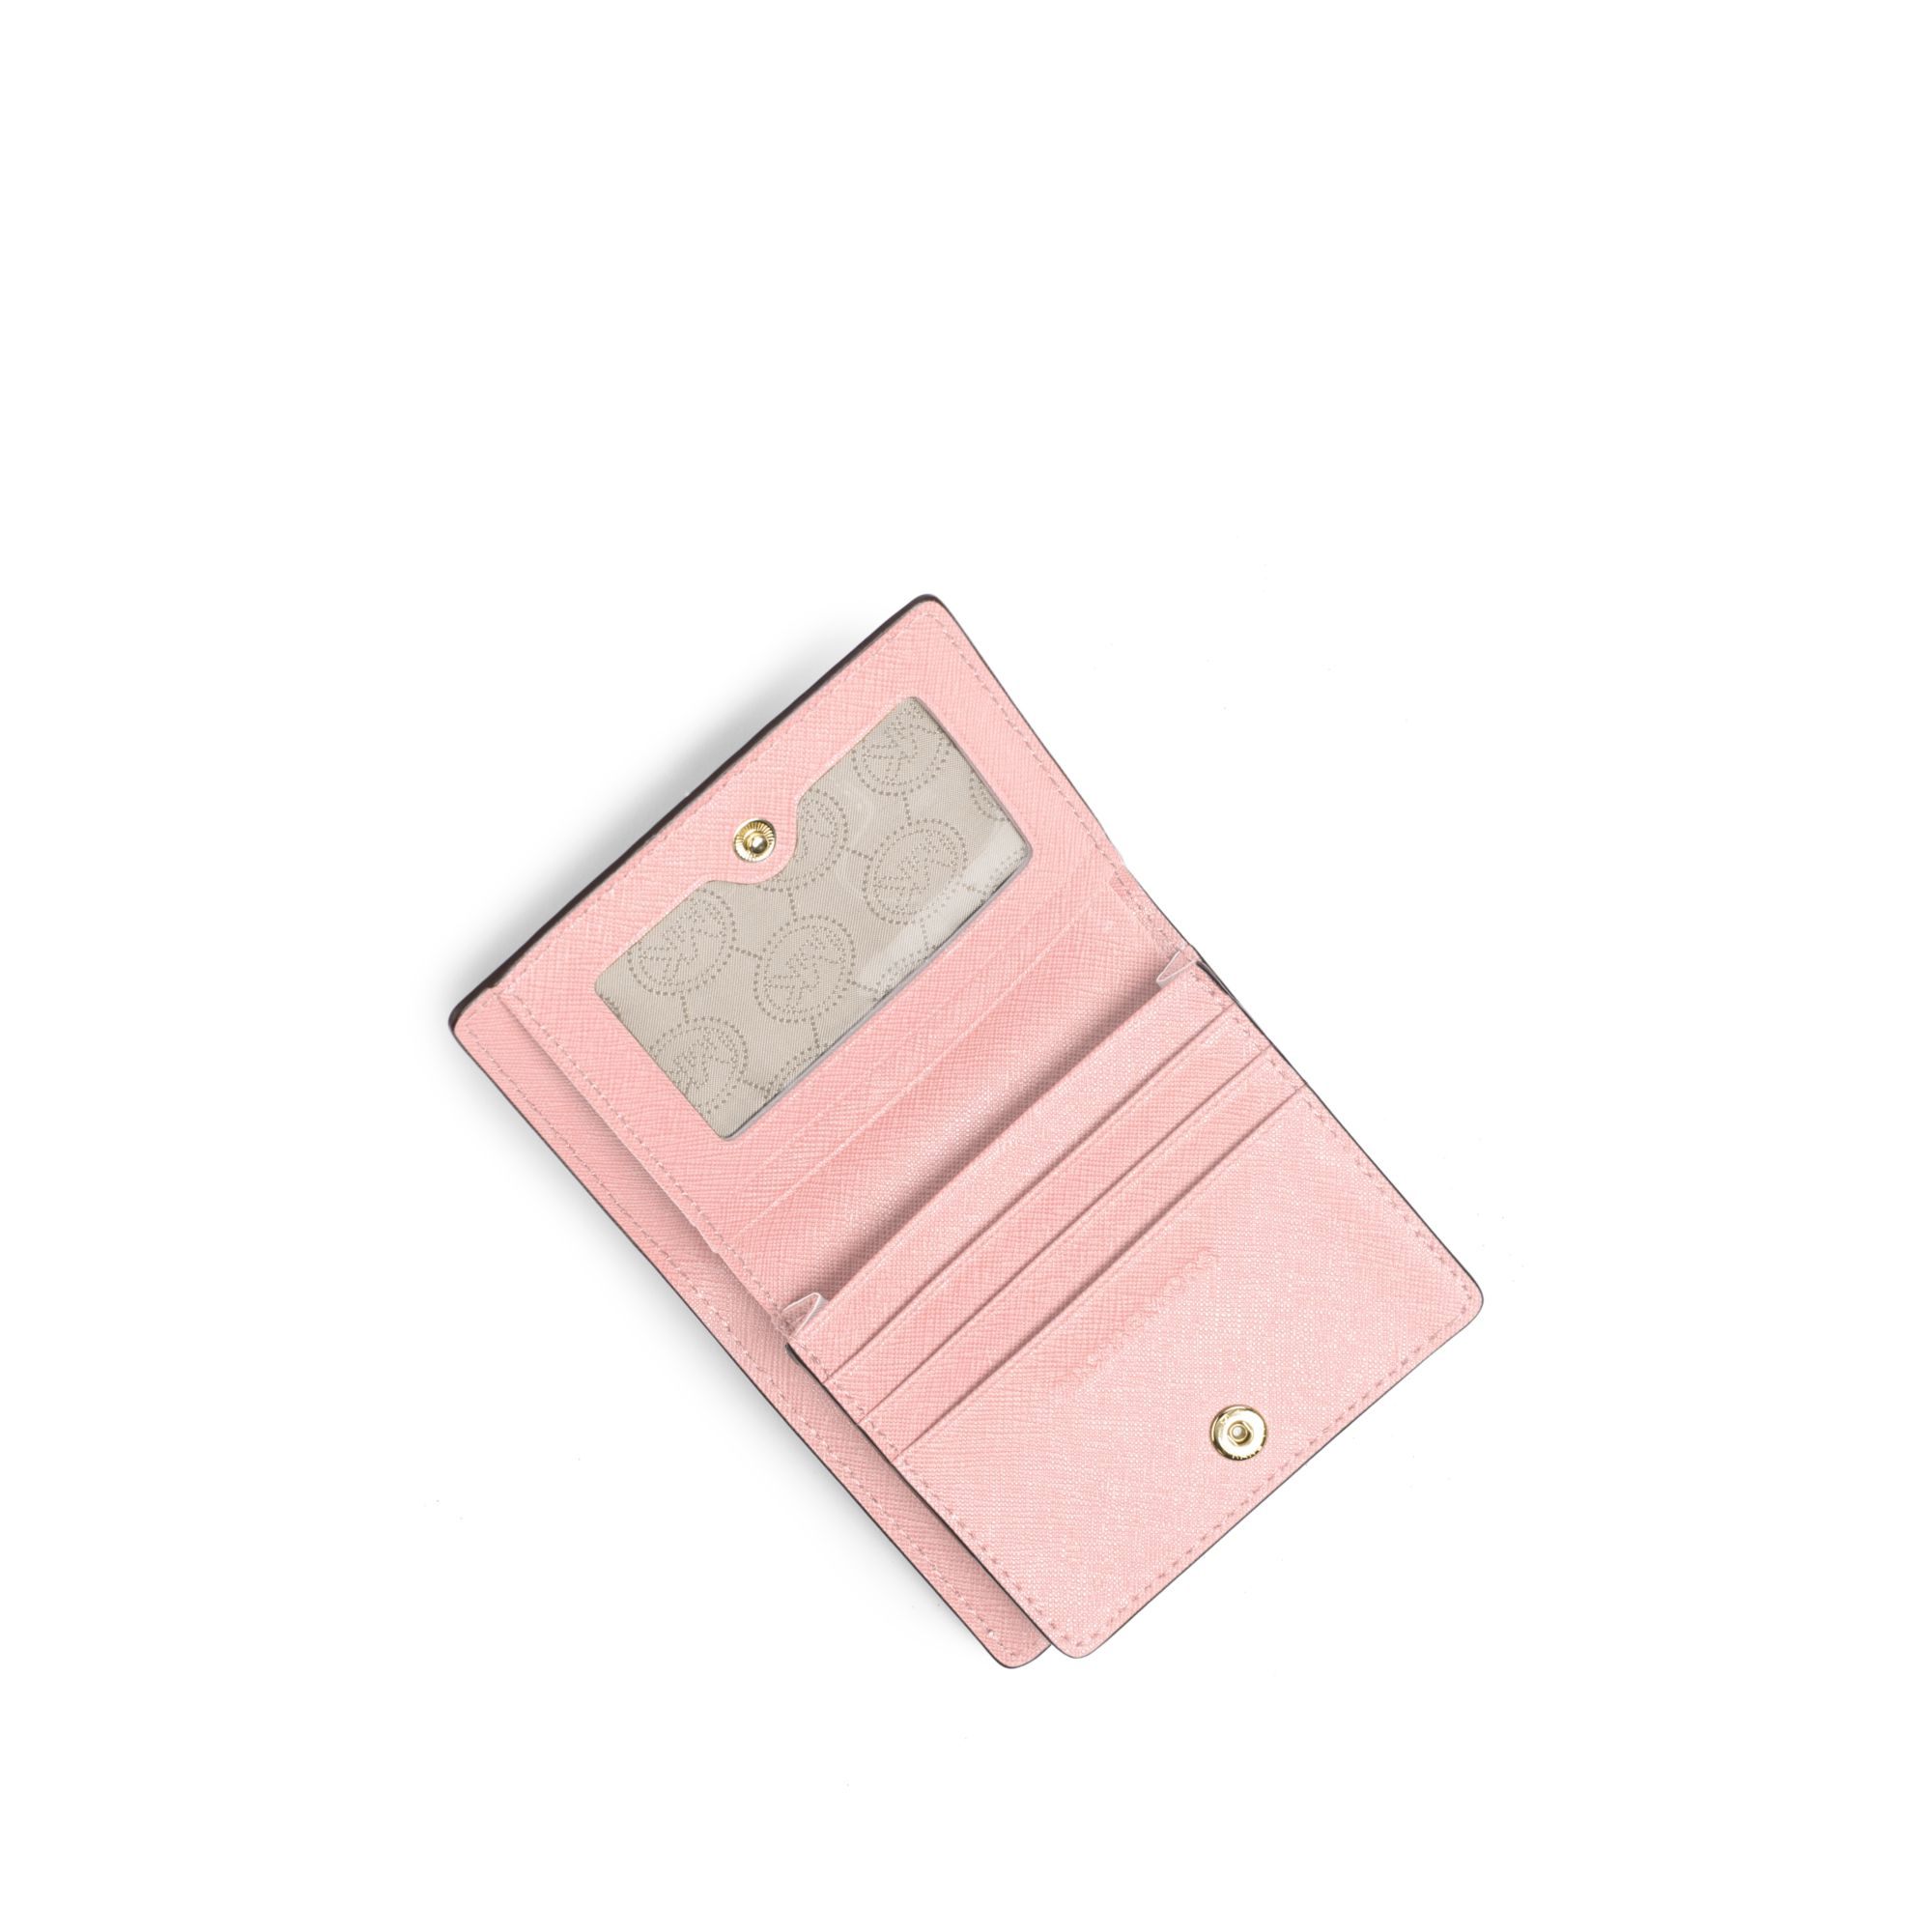 5a08eb6bb64e Michael Kors Travel Saffiano Leather Card Holder in Pink - Lyst